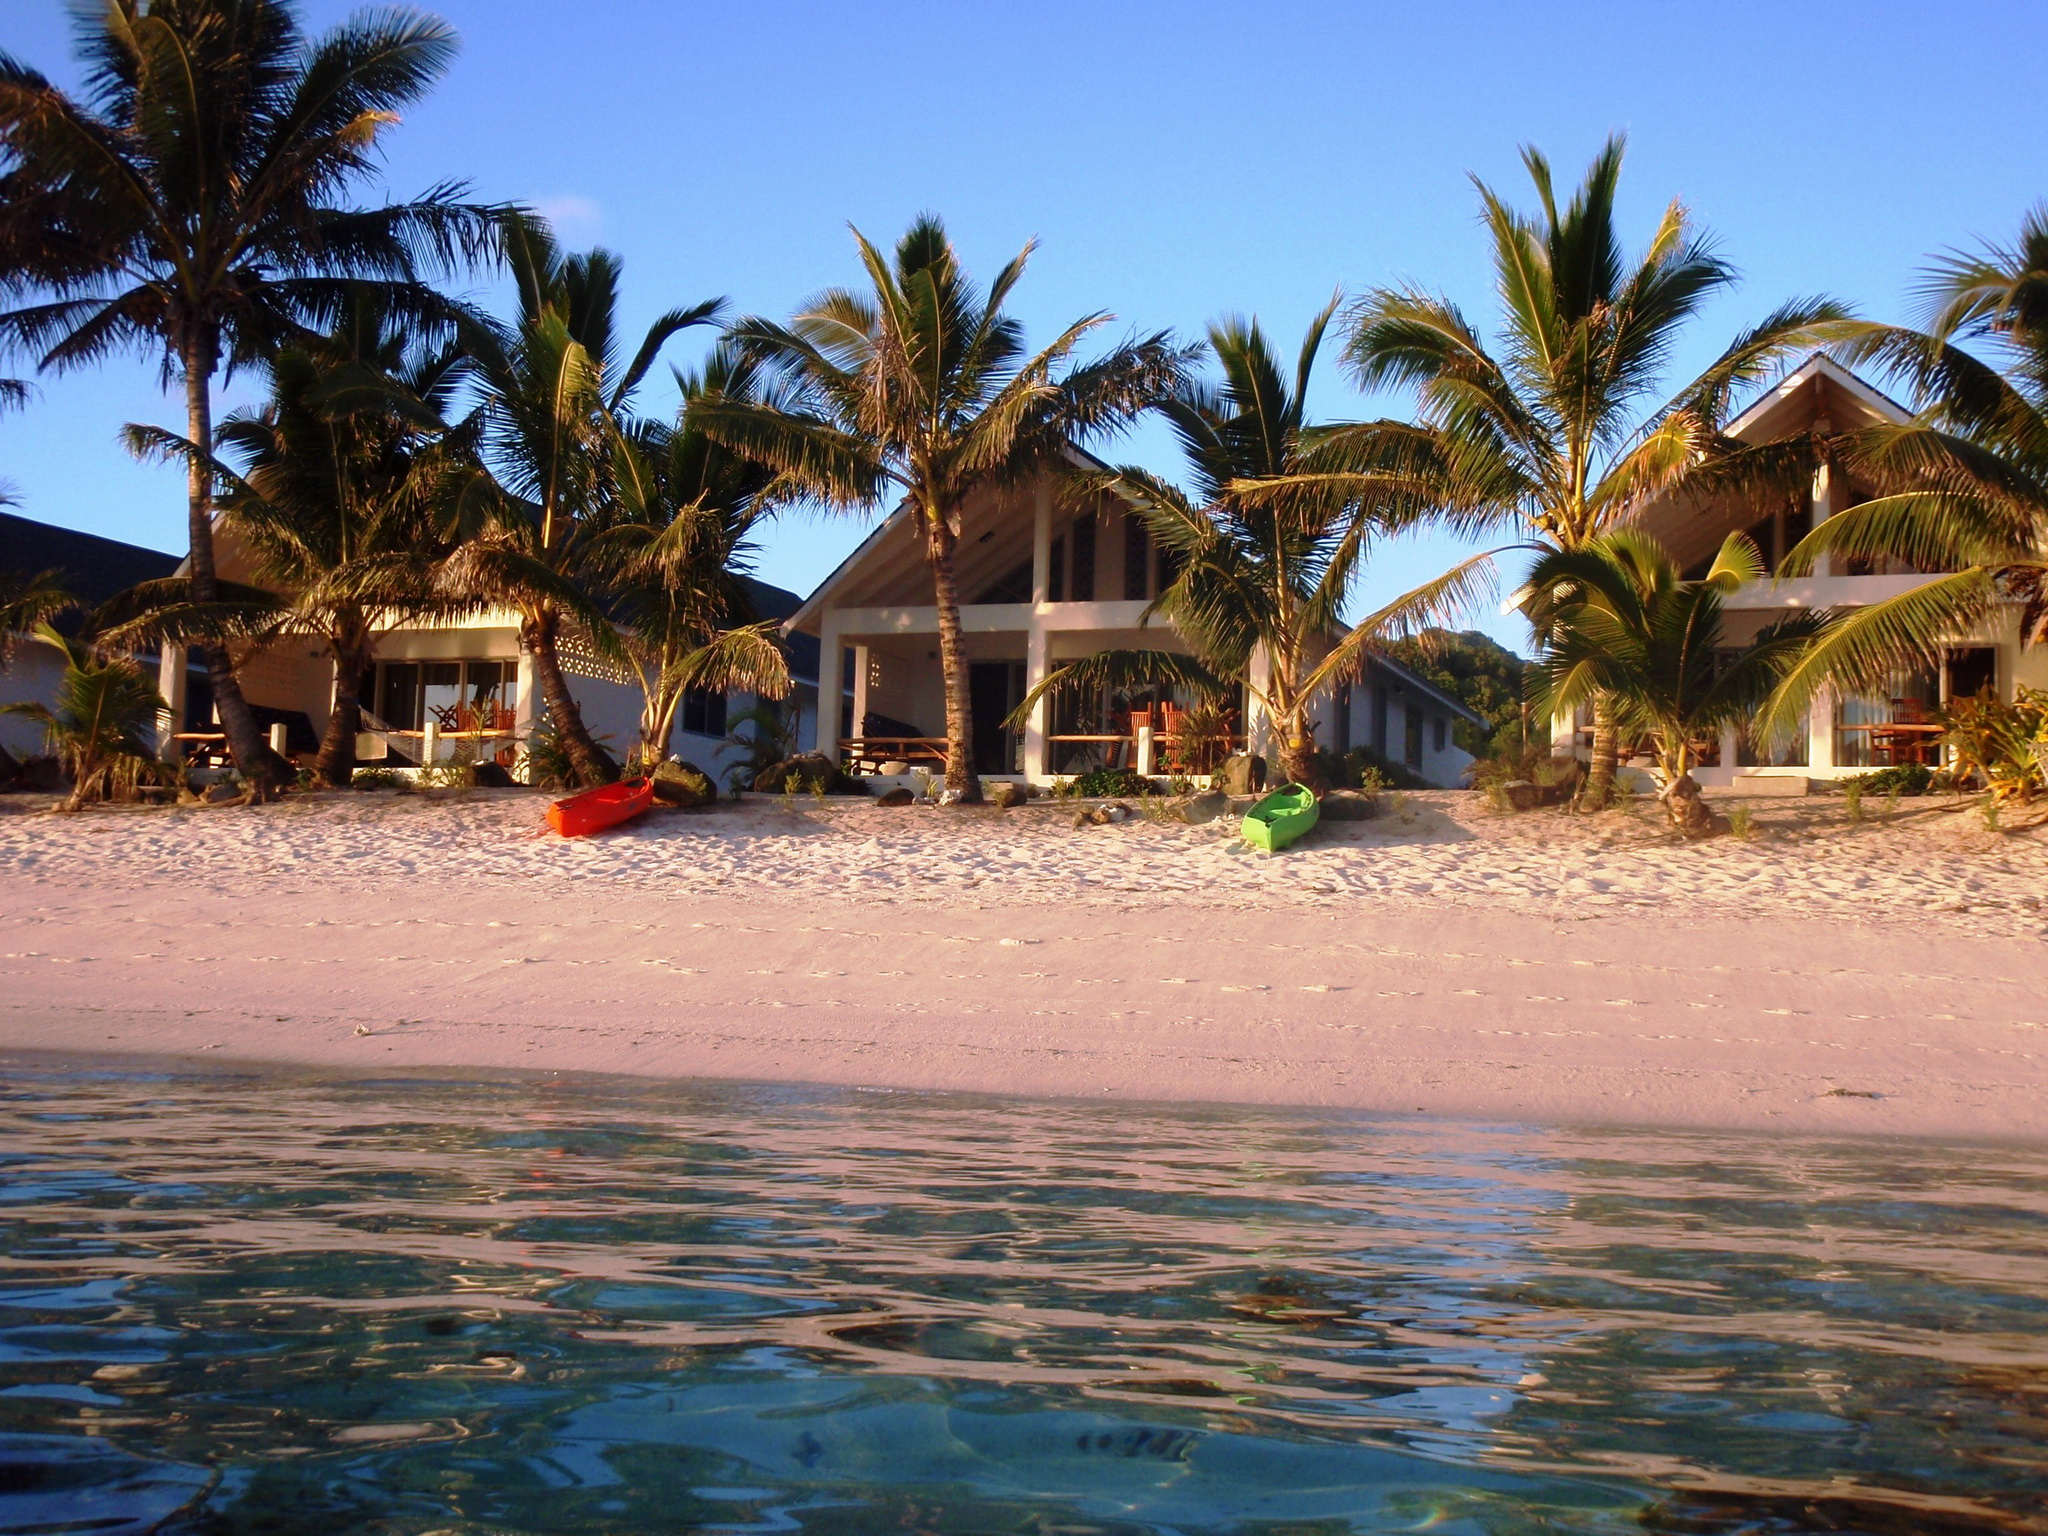 Pictures Resorts Bungalow Cook Islands Beach Palms Cities 2048x1536